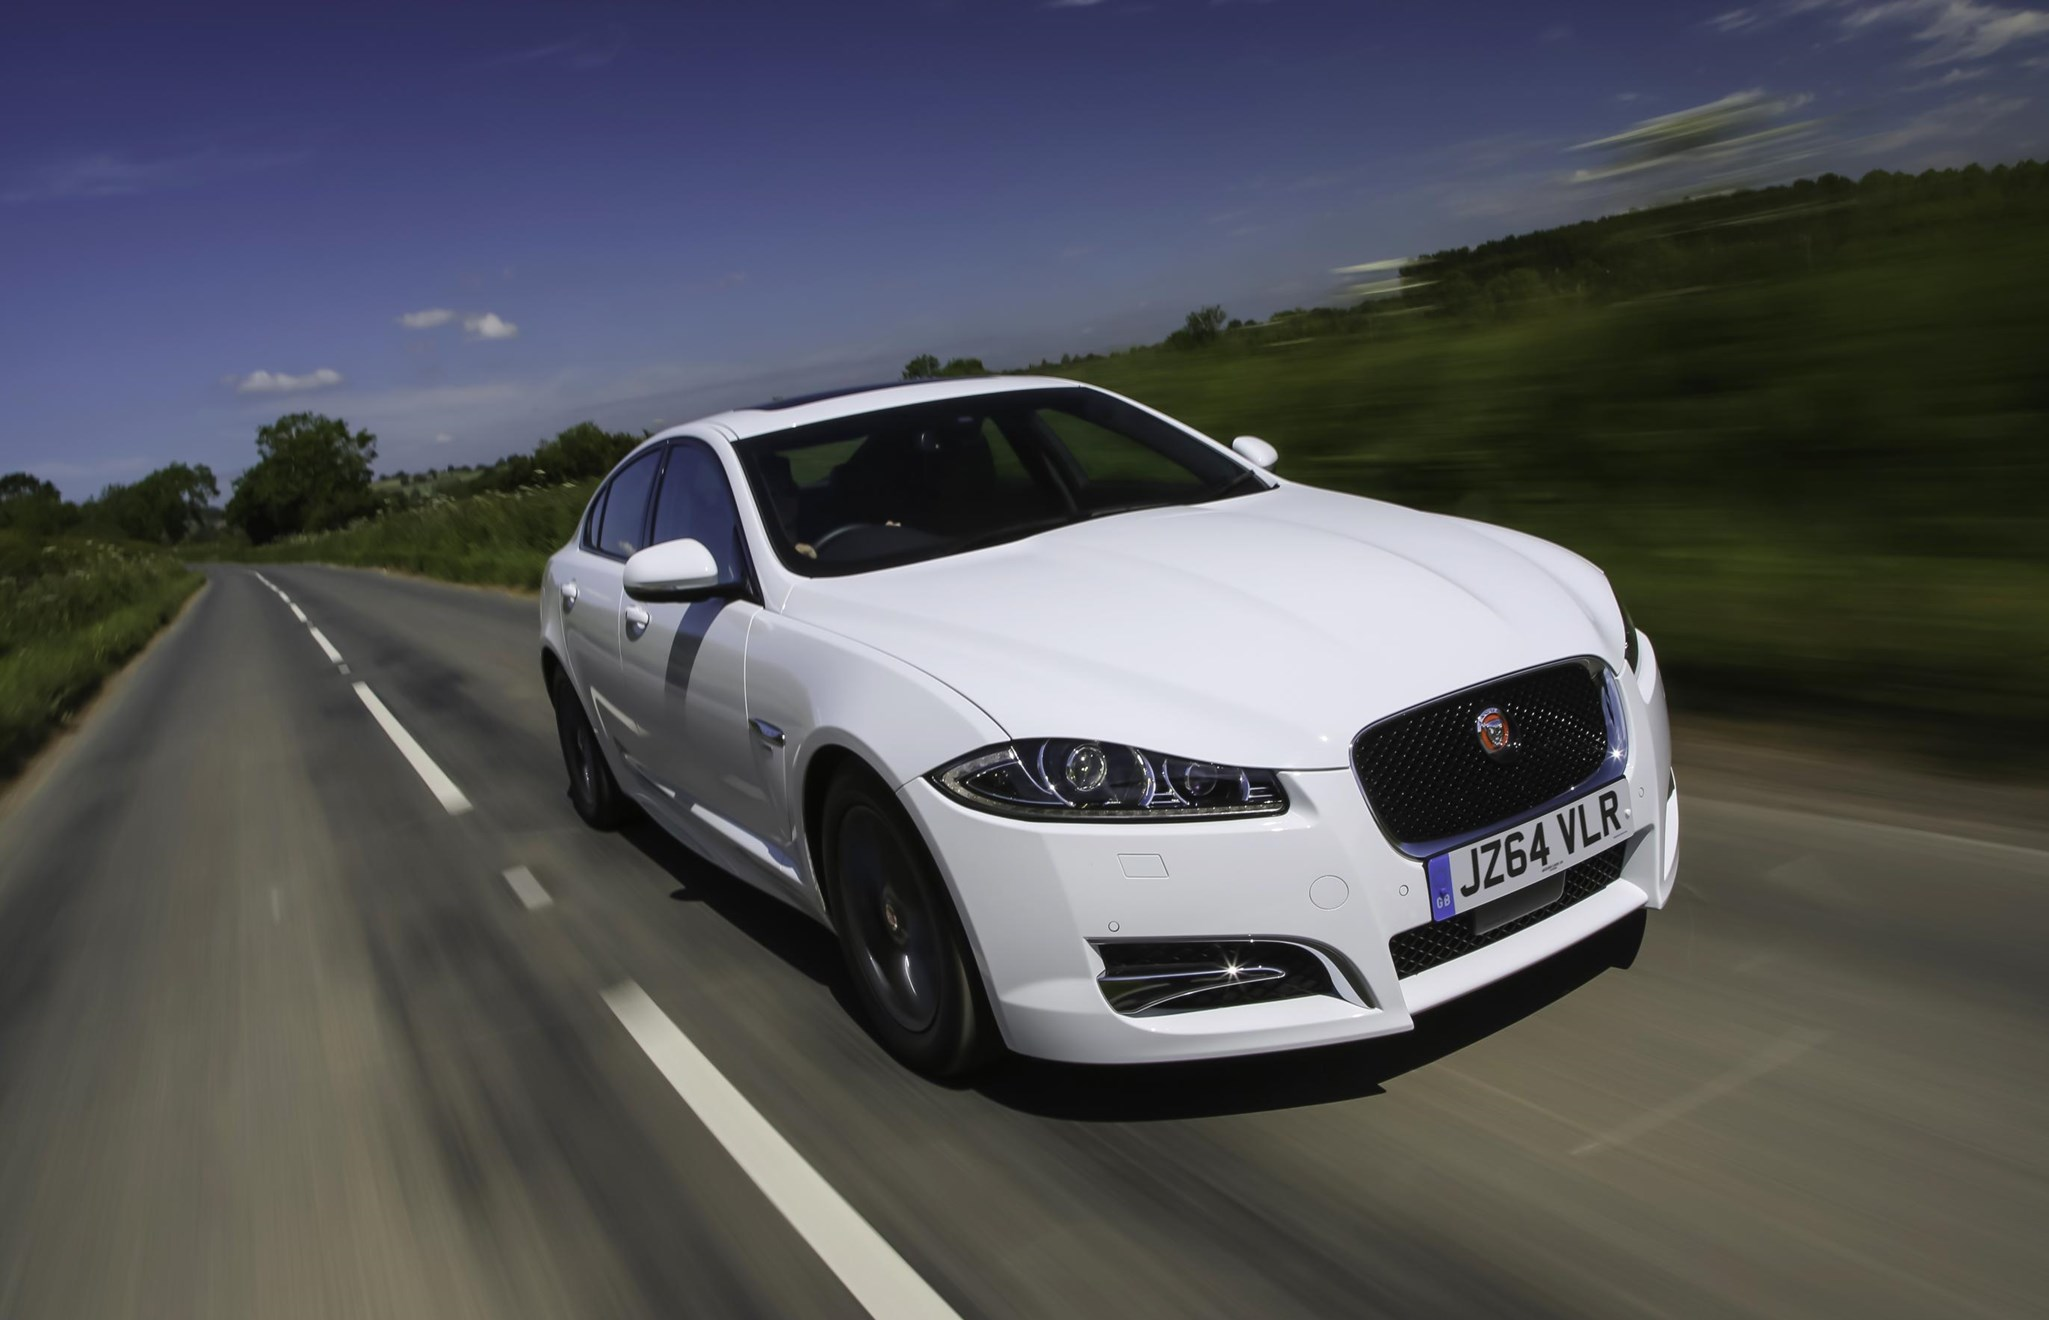 jaguar xf r sport black 2015 last hurrah for current xf. Black Bedroom Furniture Sets. Home Design Ideas